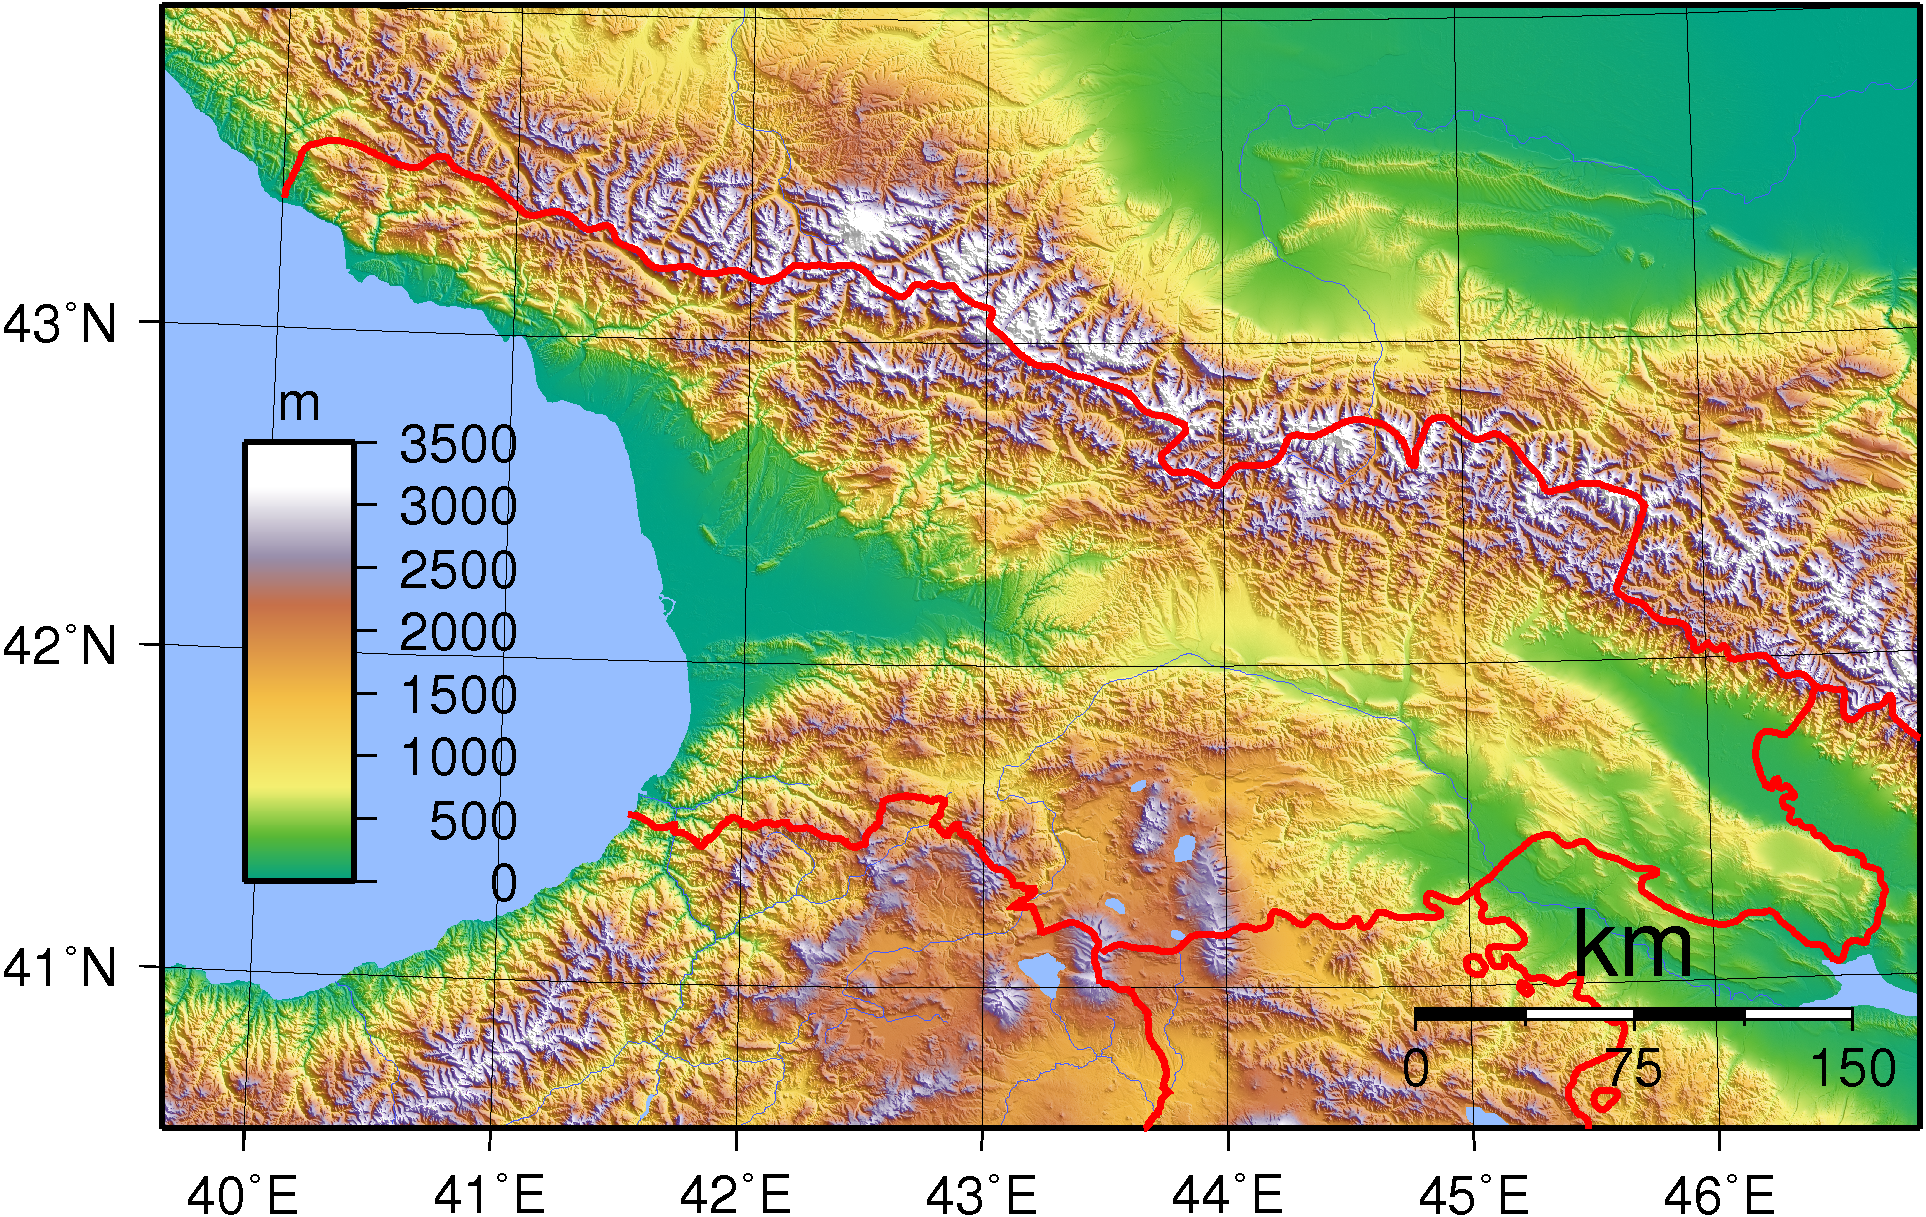 FileGeorgia Topographypng Wikimedia Commons - Topographical map of georgia